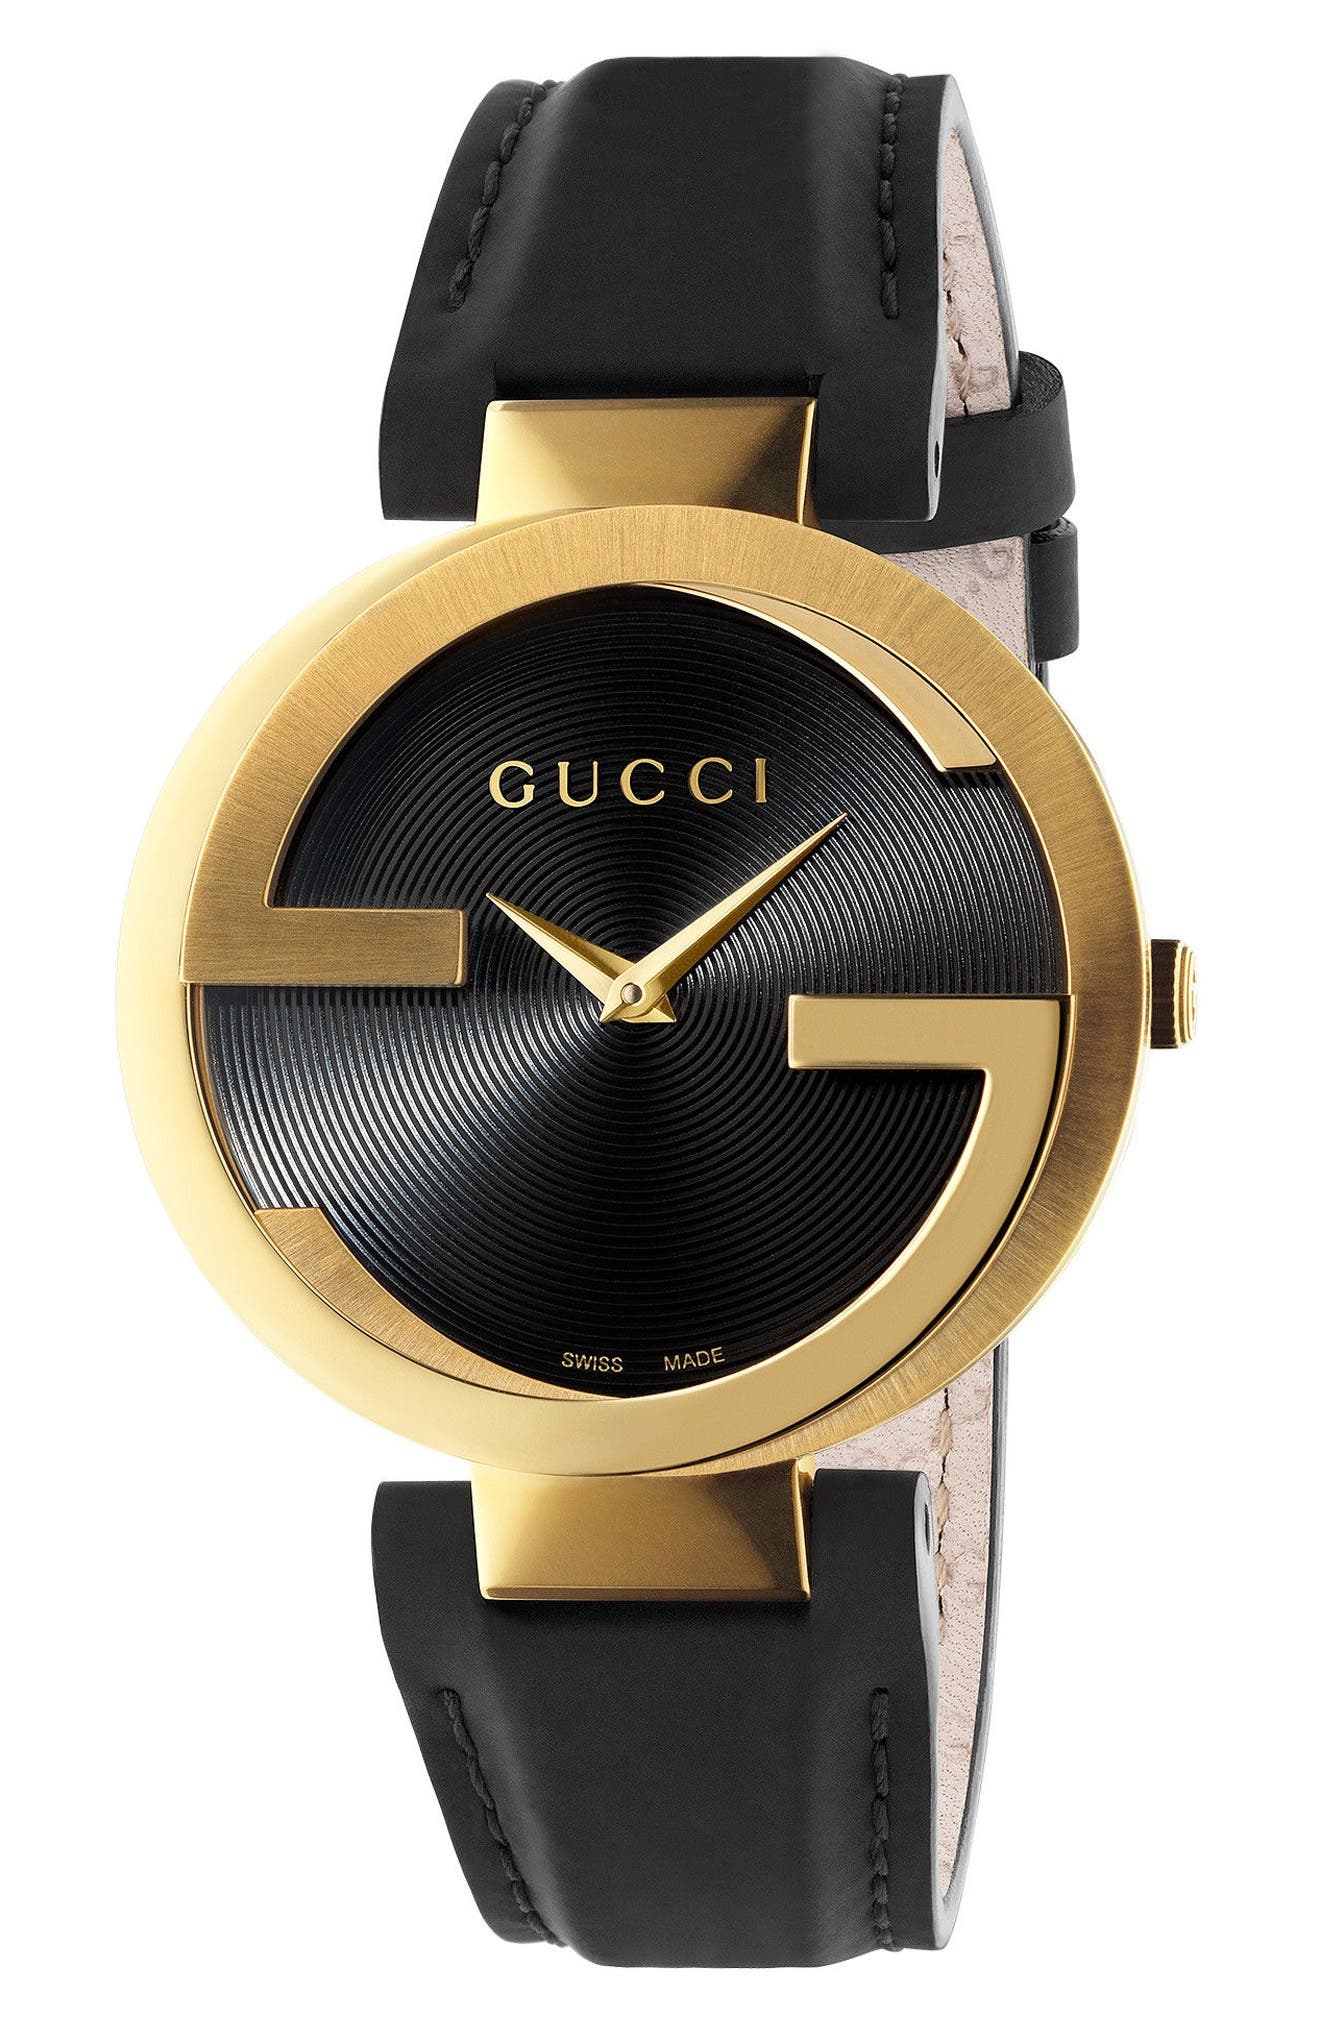 GUCCI, Interlocking Leather Strap Watch, 37mm, Main thumbnail 1, color, BLACK/ GOLD